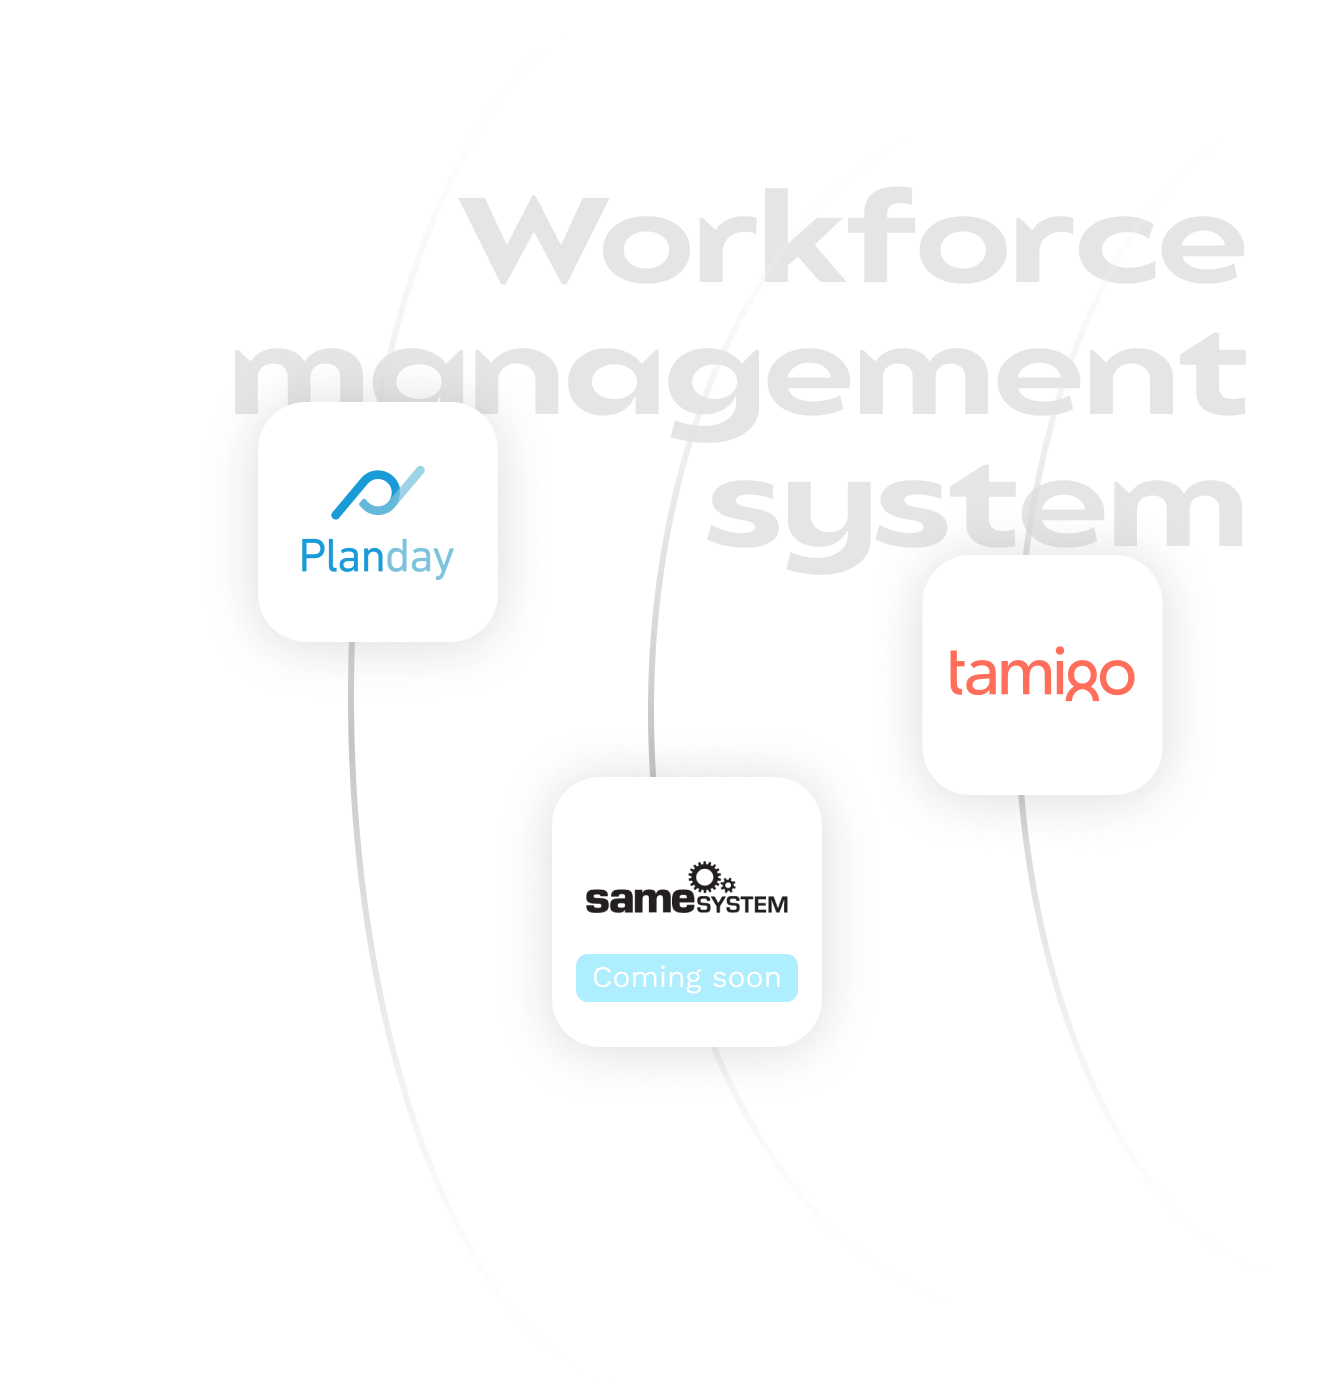 Butter supports a variety of different workforce management systems, among others Planday, tamigo and samesystem